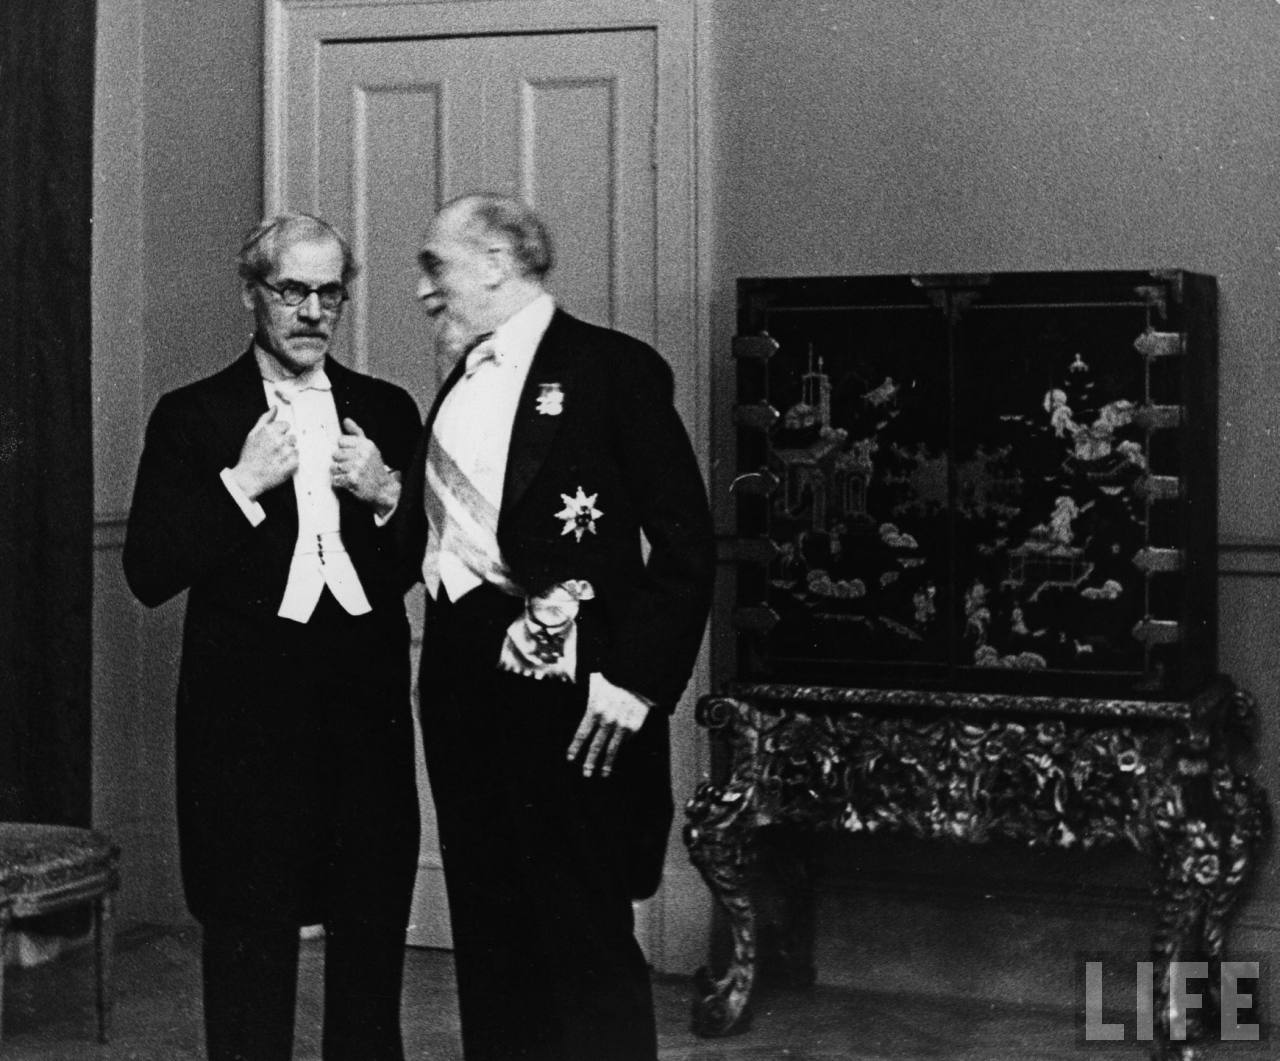 (L-R) Prime Minister Ramsay MacDonald of Great Britain and Governor of The Bank of England Montague Norman attending diplomatic reception at Austrian Legation. 1932, Photographer - Erich Salomon